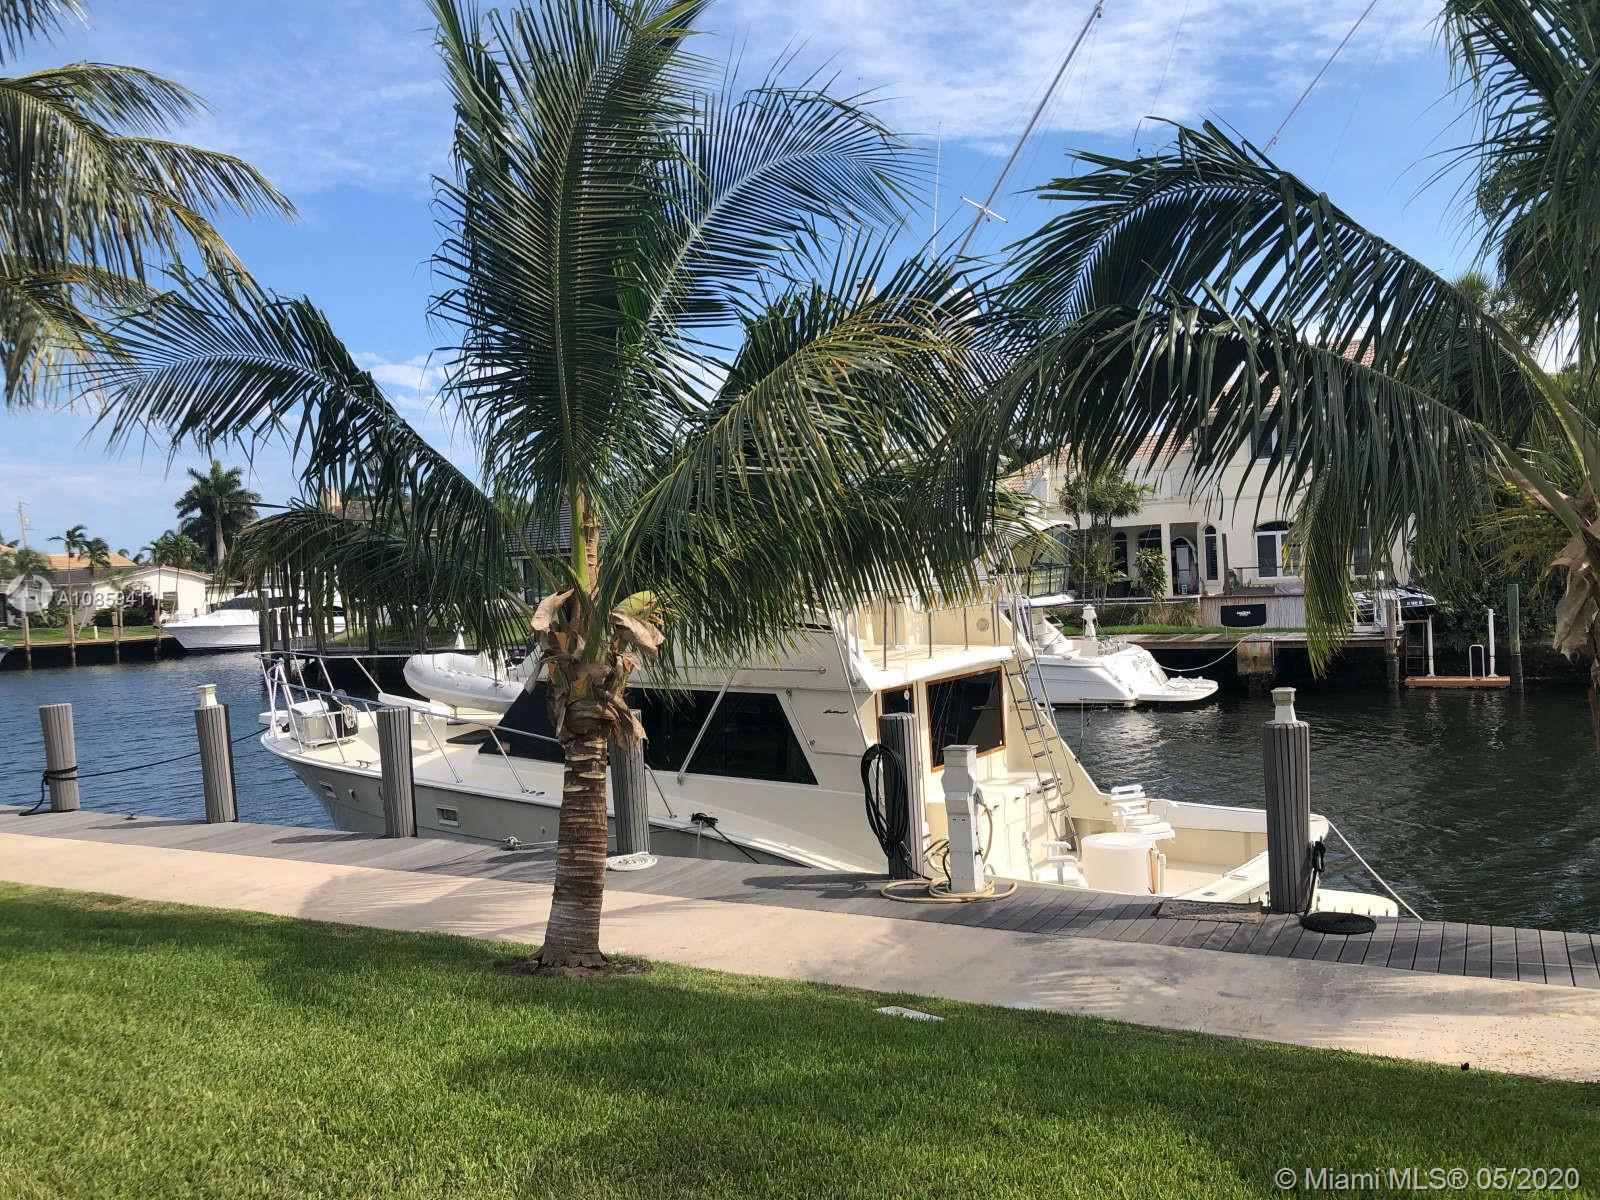 Location, Location, Location No fixed bridges and 100 feet of dock space close proximity to the Hillsboro and Boca Inlets! Live in the coveted Lighthouse Point Neighborhood on this quiet street with NO THROUGH TRAFFIC! South orientation. $ 30,000 cash back at closing towards your dream pool or kitchen. 3 bedroom, 2.5 bathrooms, 100 Foot of A+ Deep Water/dock, open views of the beautiful, wide, North Grand Canal from most rooms, only 600 yards to Lighthouse Point Yacht Club Marina with quick access to dual ocean inlets (Hillsboro & Boca Raton), Also, two perfect guest bedrooms or hobby/office use, impact windows/doors, new roof in 2014 and a security system equipped with exterior cameras. The dock is built of concrete and composite and can accommodate multiple boats. Large 10,000 sf lot.